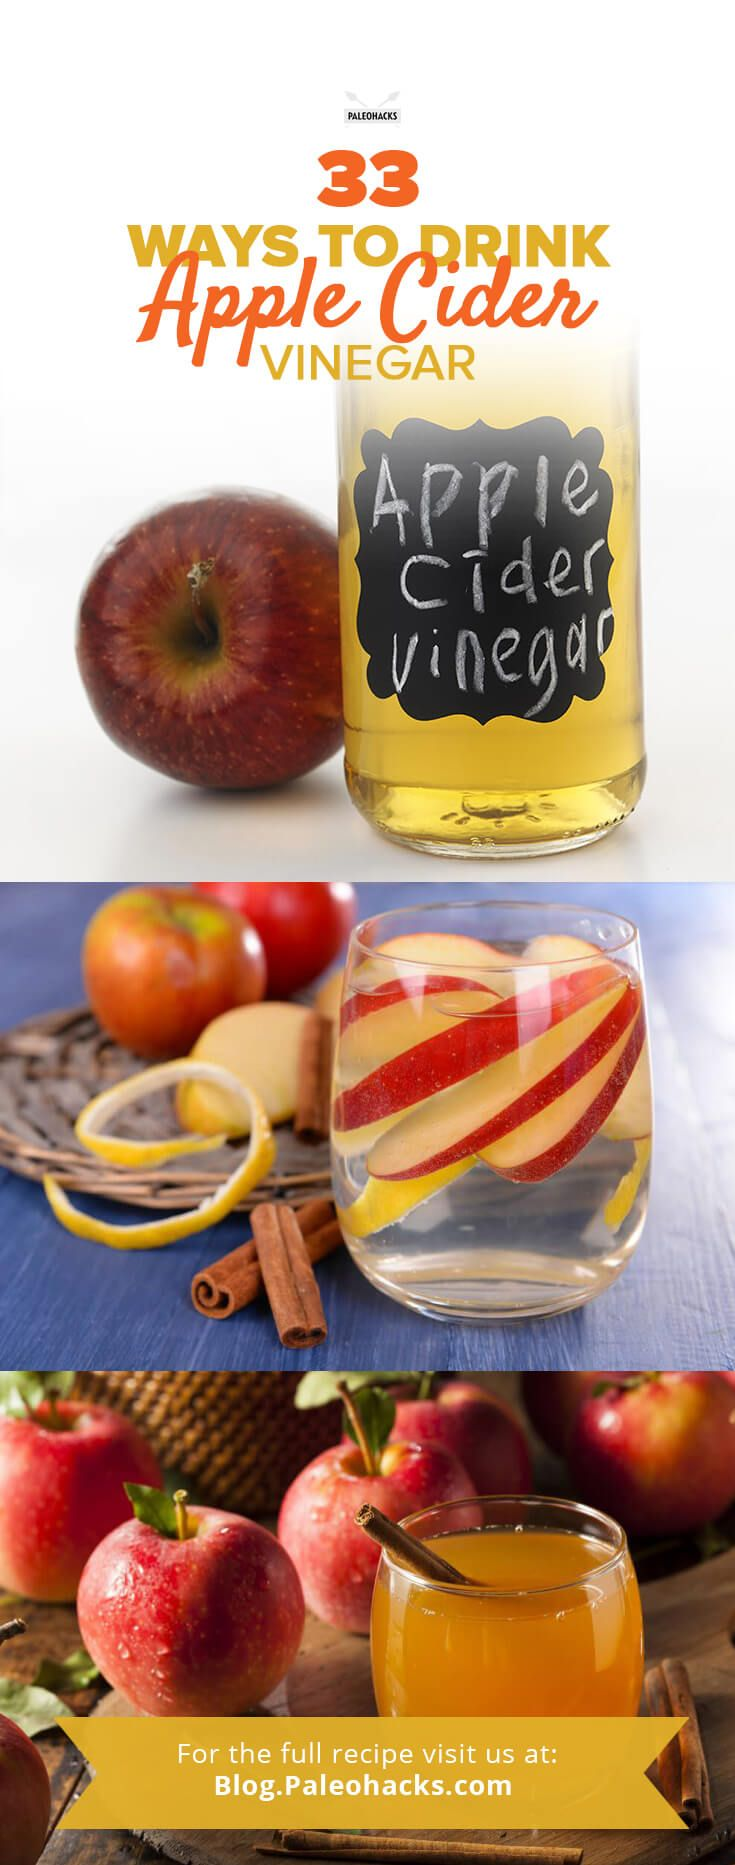 Apple cider vinegar is one of the best superfoods you can add to your diet. This powerful vinegar is a fermented liquid that offers many health benefits, including detoxification, the reduction of inflammation, and digestive relief. Get the recipe collection here: http://paleo.co/ACVdrinks